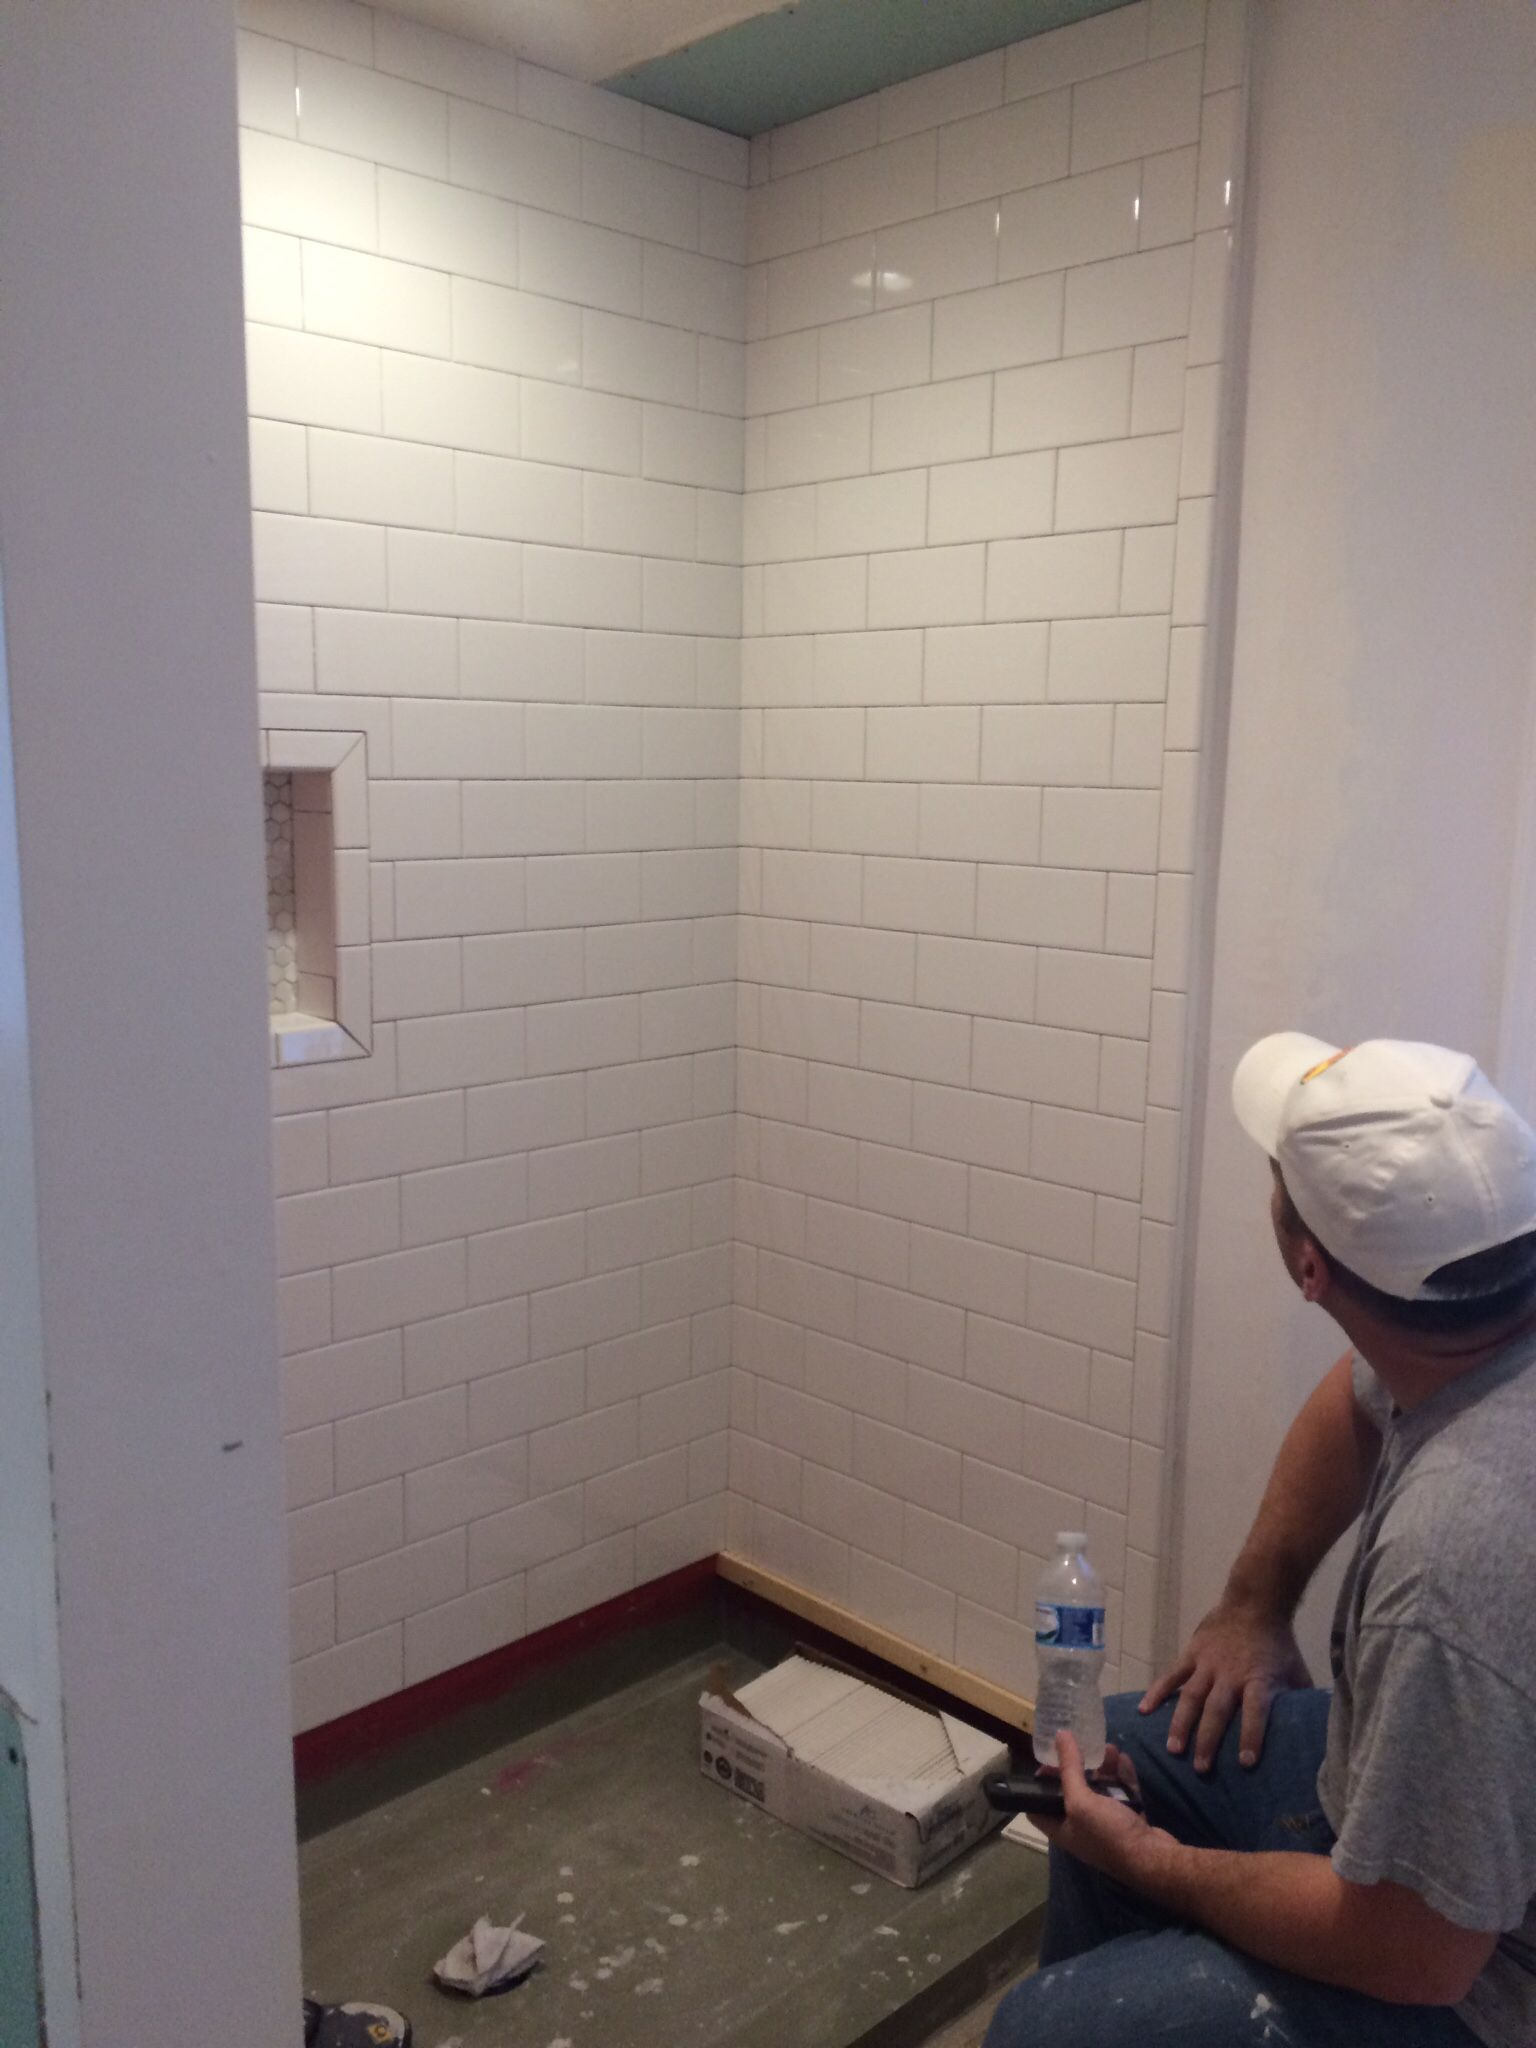 Shower Subway Tiles These Are The 4x8 American Olean Tiles From